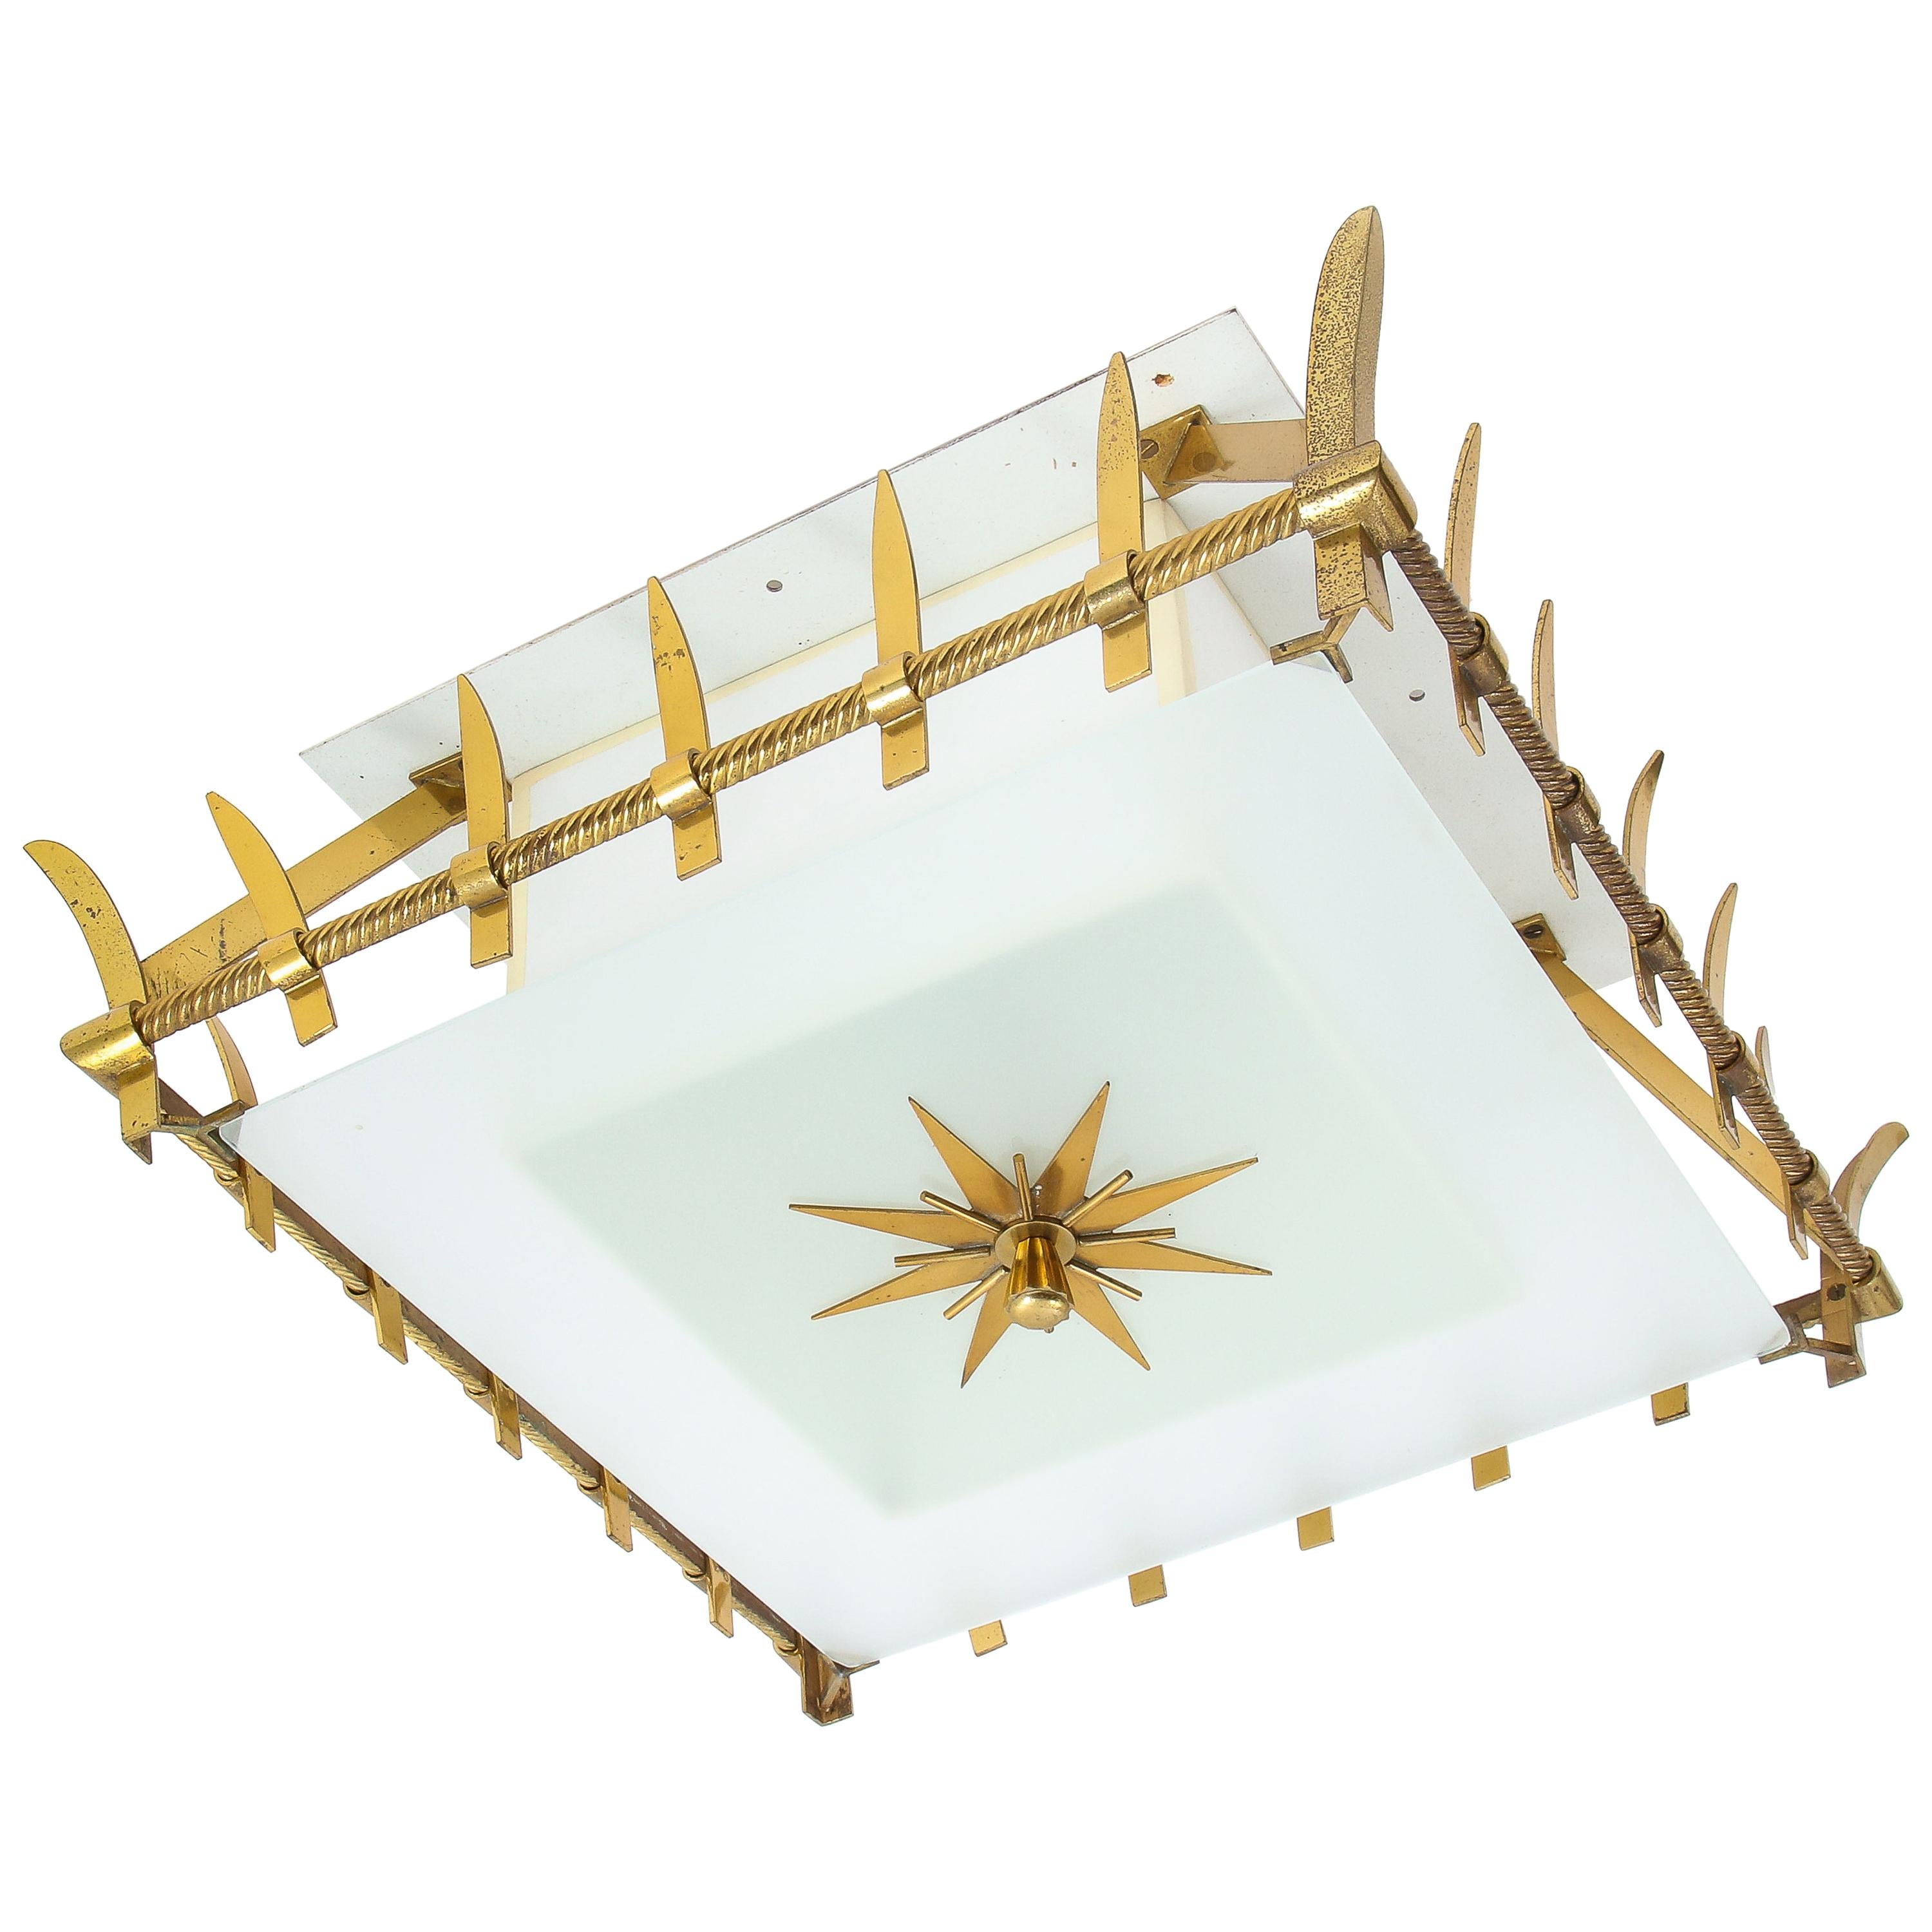 Flushmount Fixture in Bronze and Glass by Marius-Ernest Sabino, France, 1950s